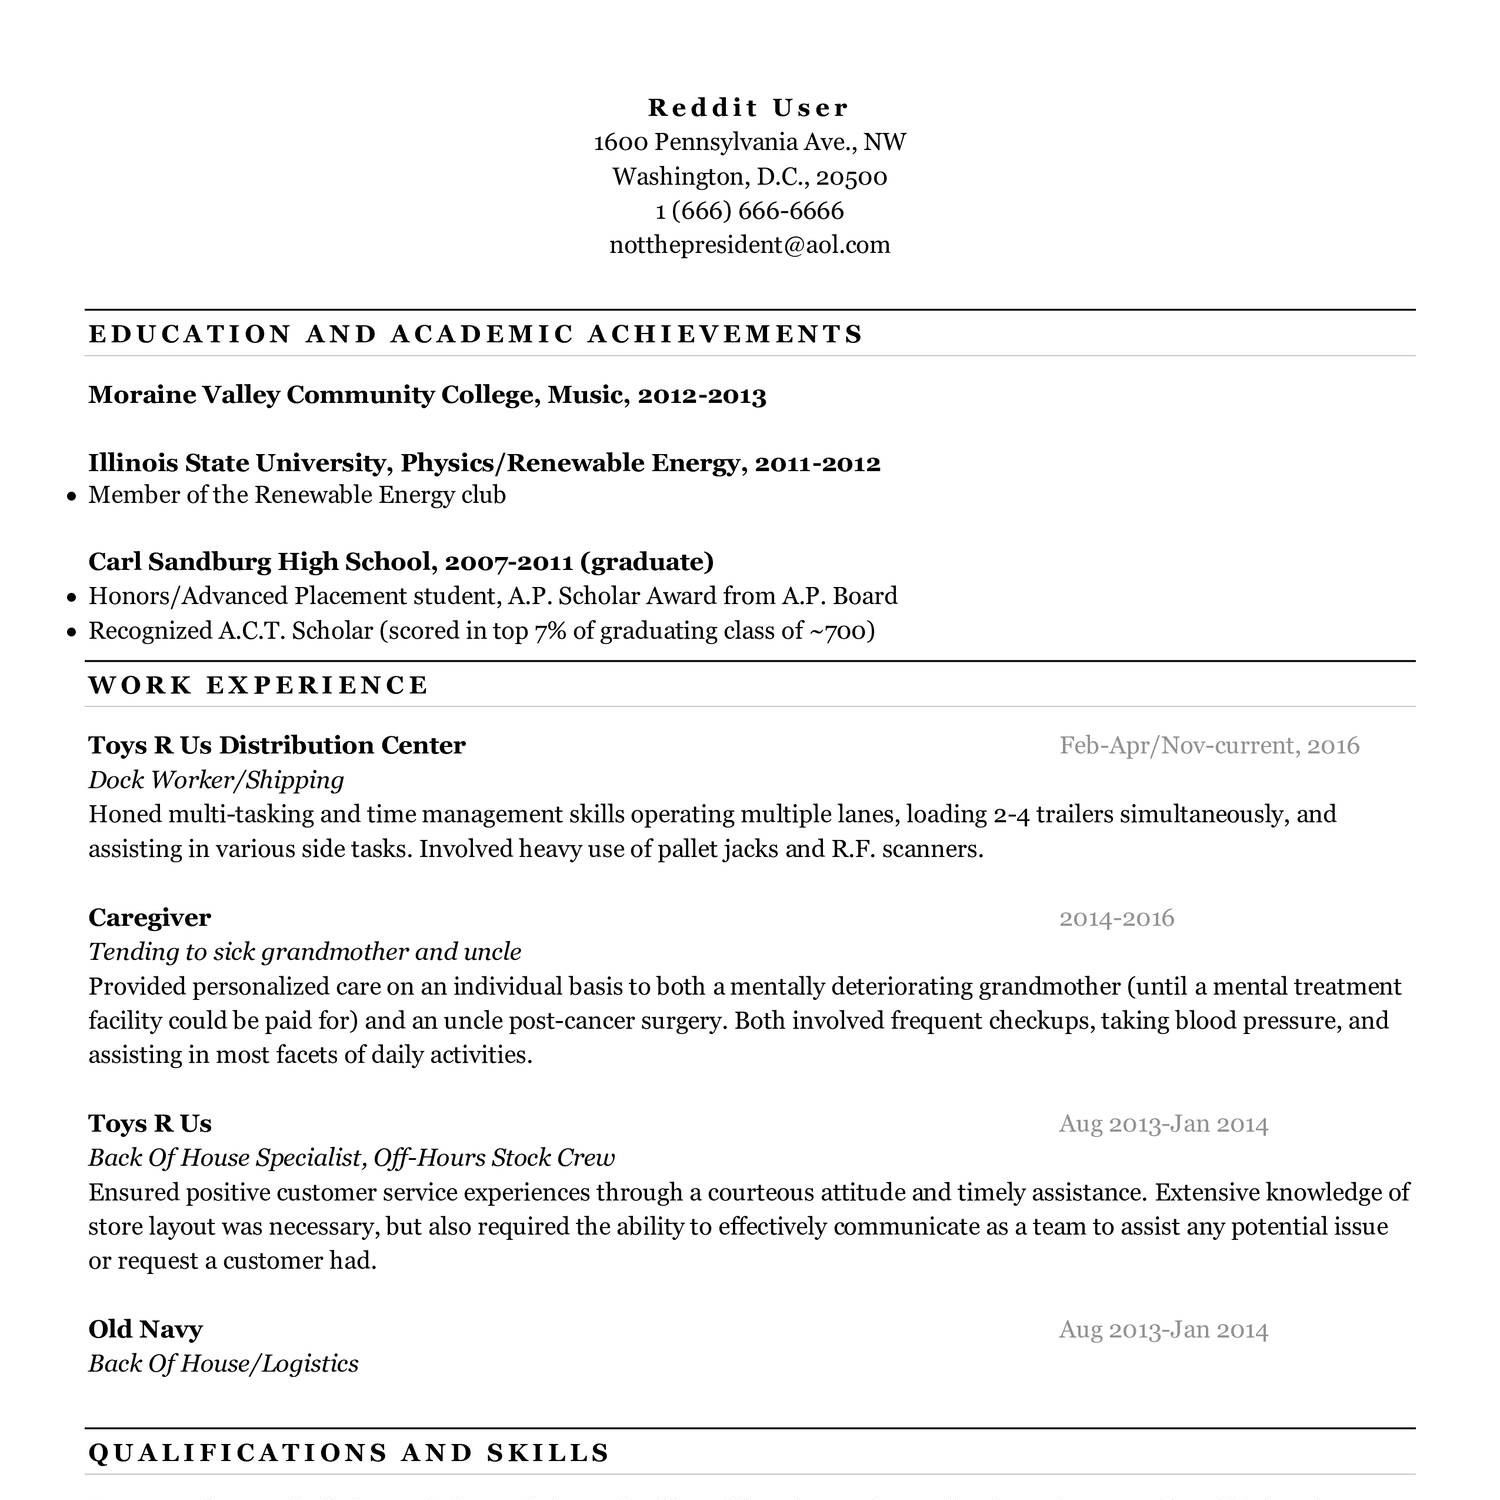 Resume Template Redditpdf